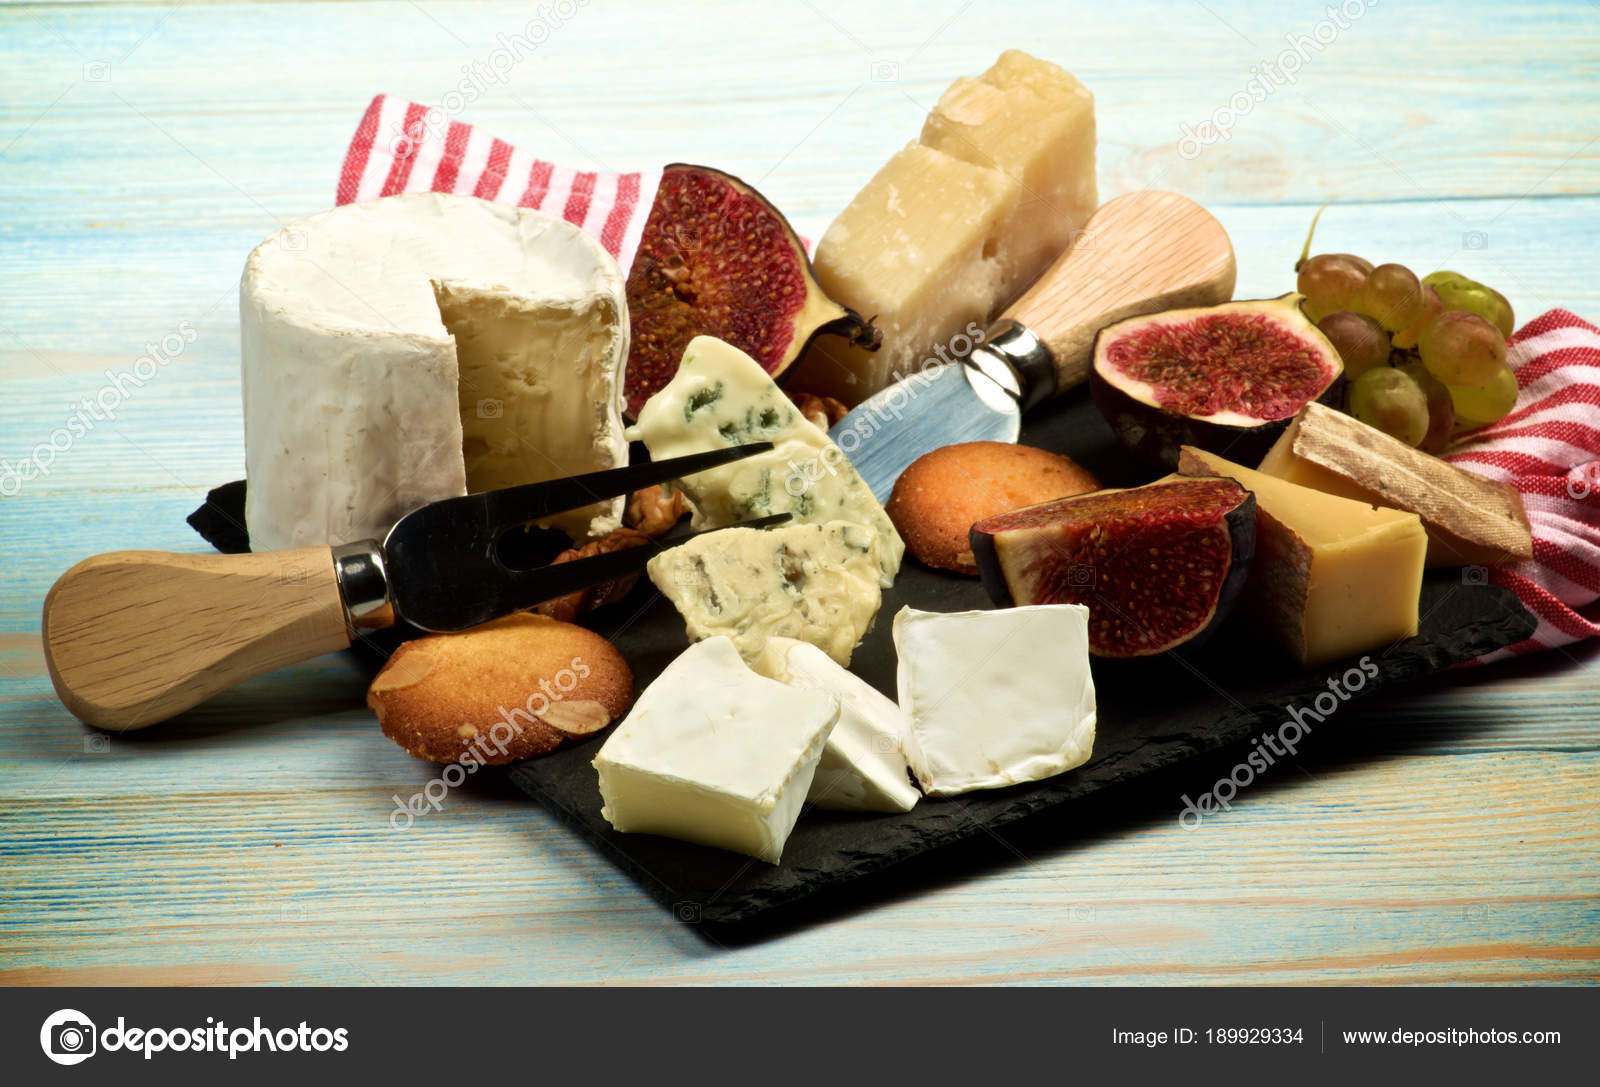 Gourmet Cheese Plate u2014 Stock Photo & Gourmet Cheese Plate u2014 Stock Photo © zhekos_ #189929334